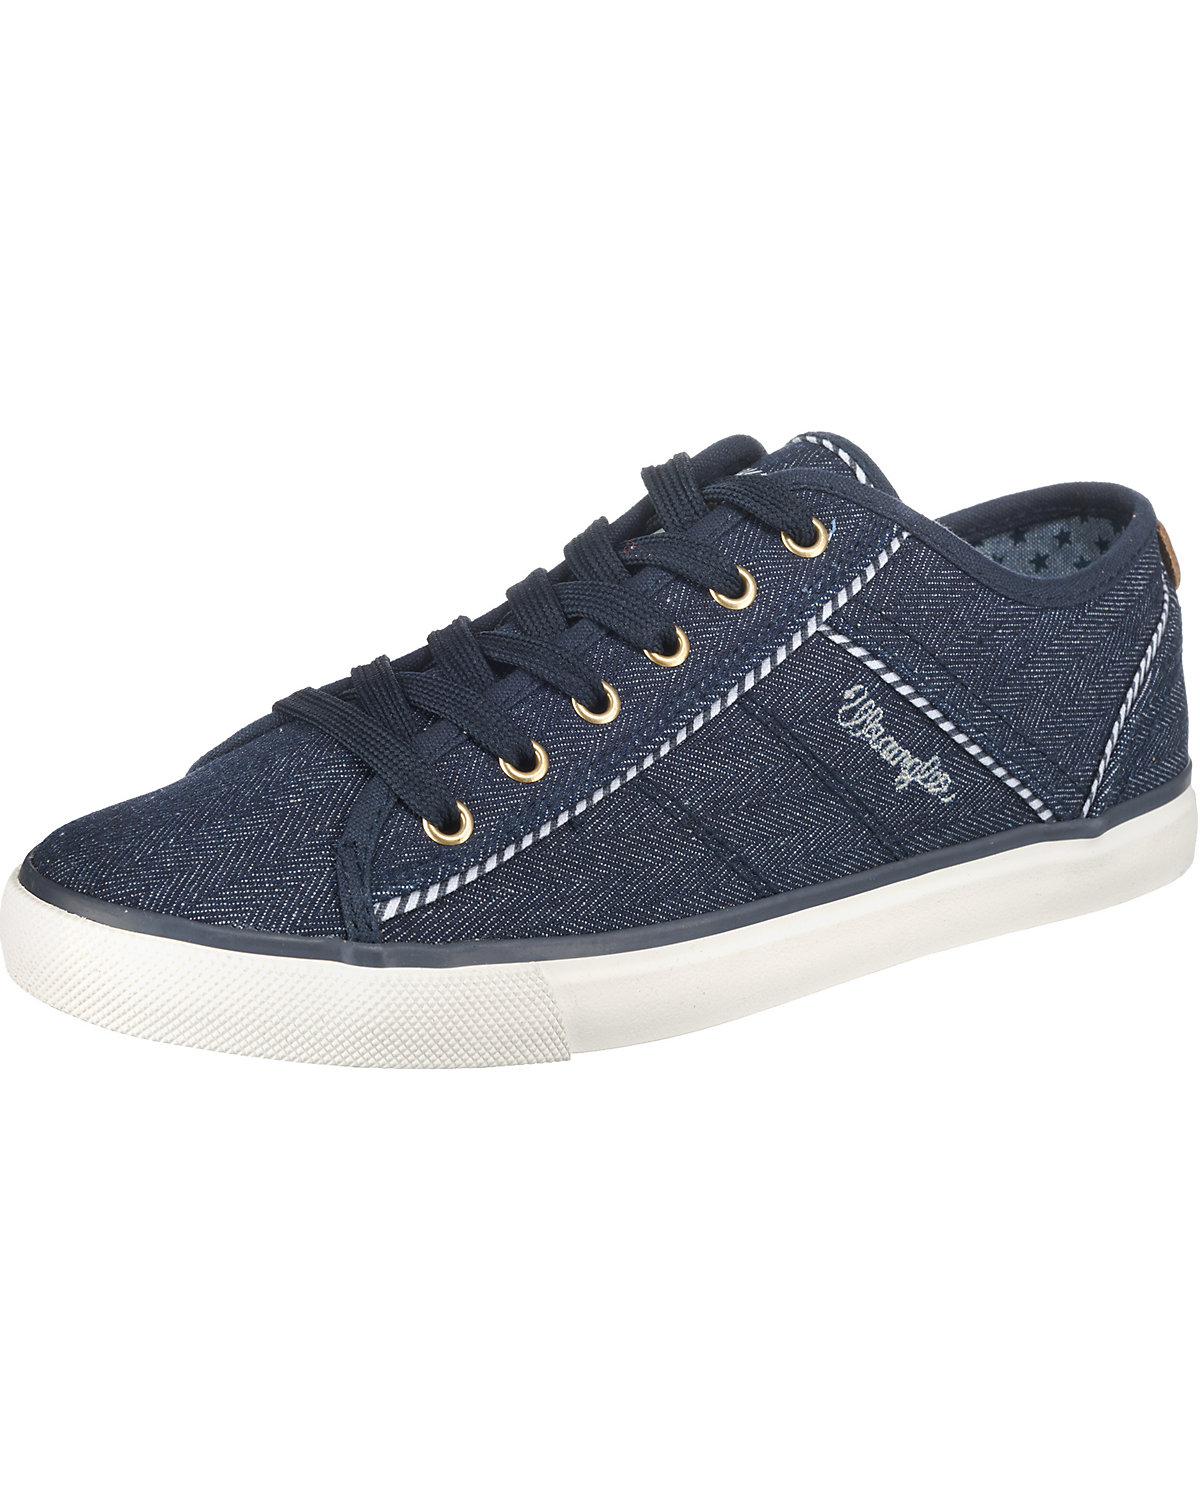 Wrangler, Starry Sneakers Low, blau